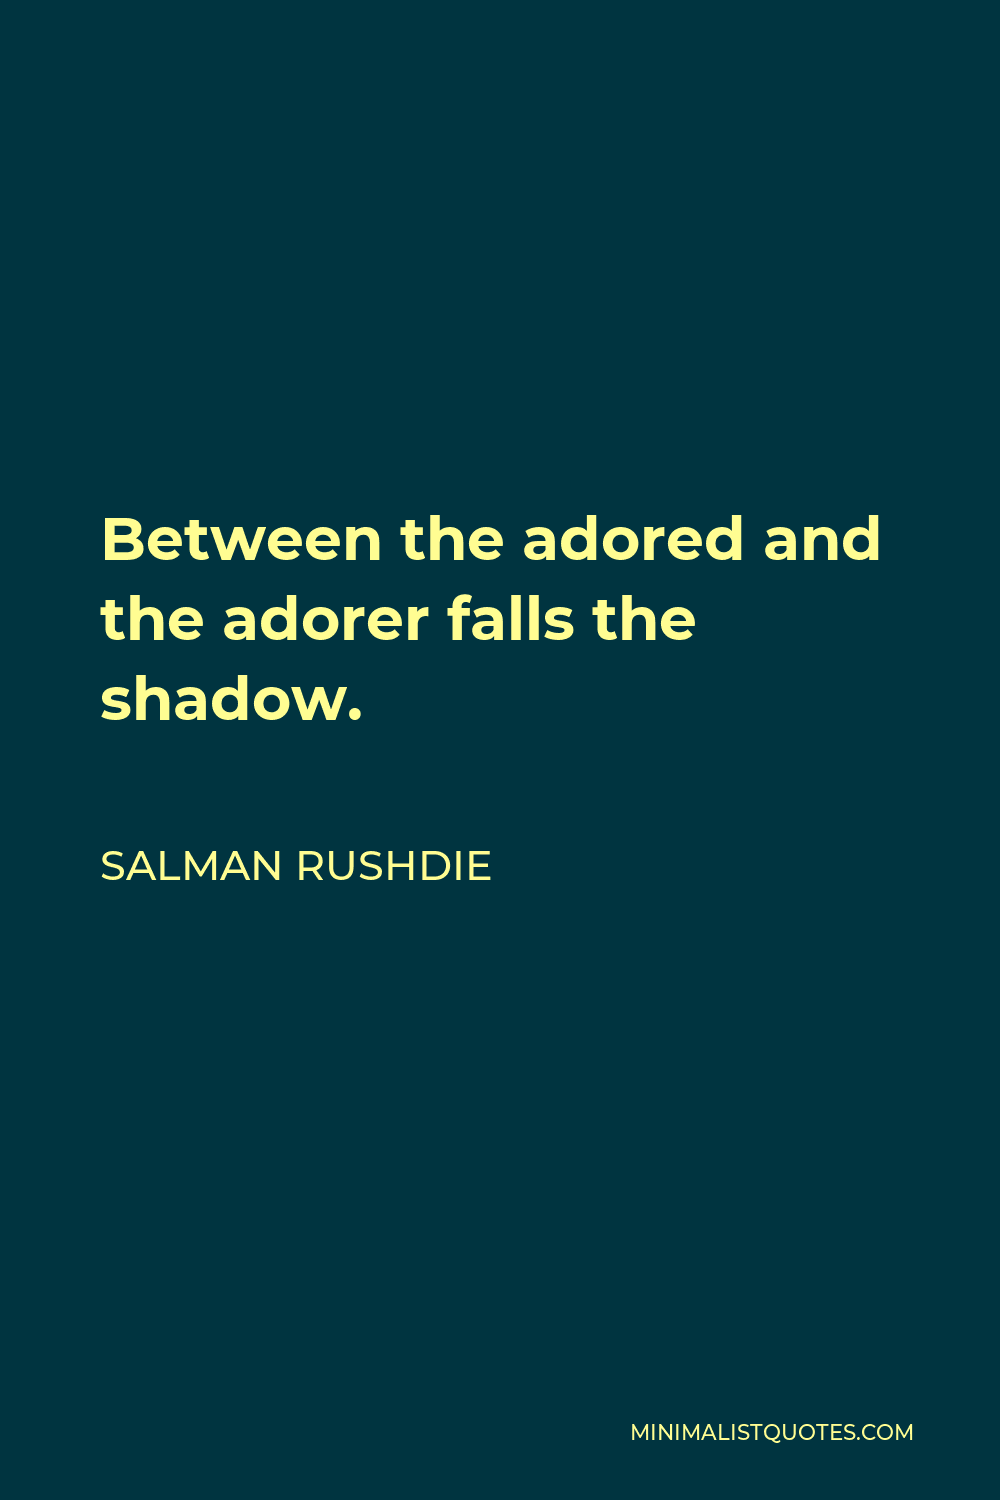 Salman Rushdie Quote - Between the adored and the adorer falls the shadow.